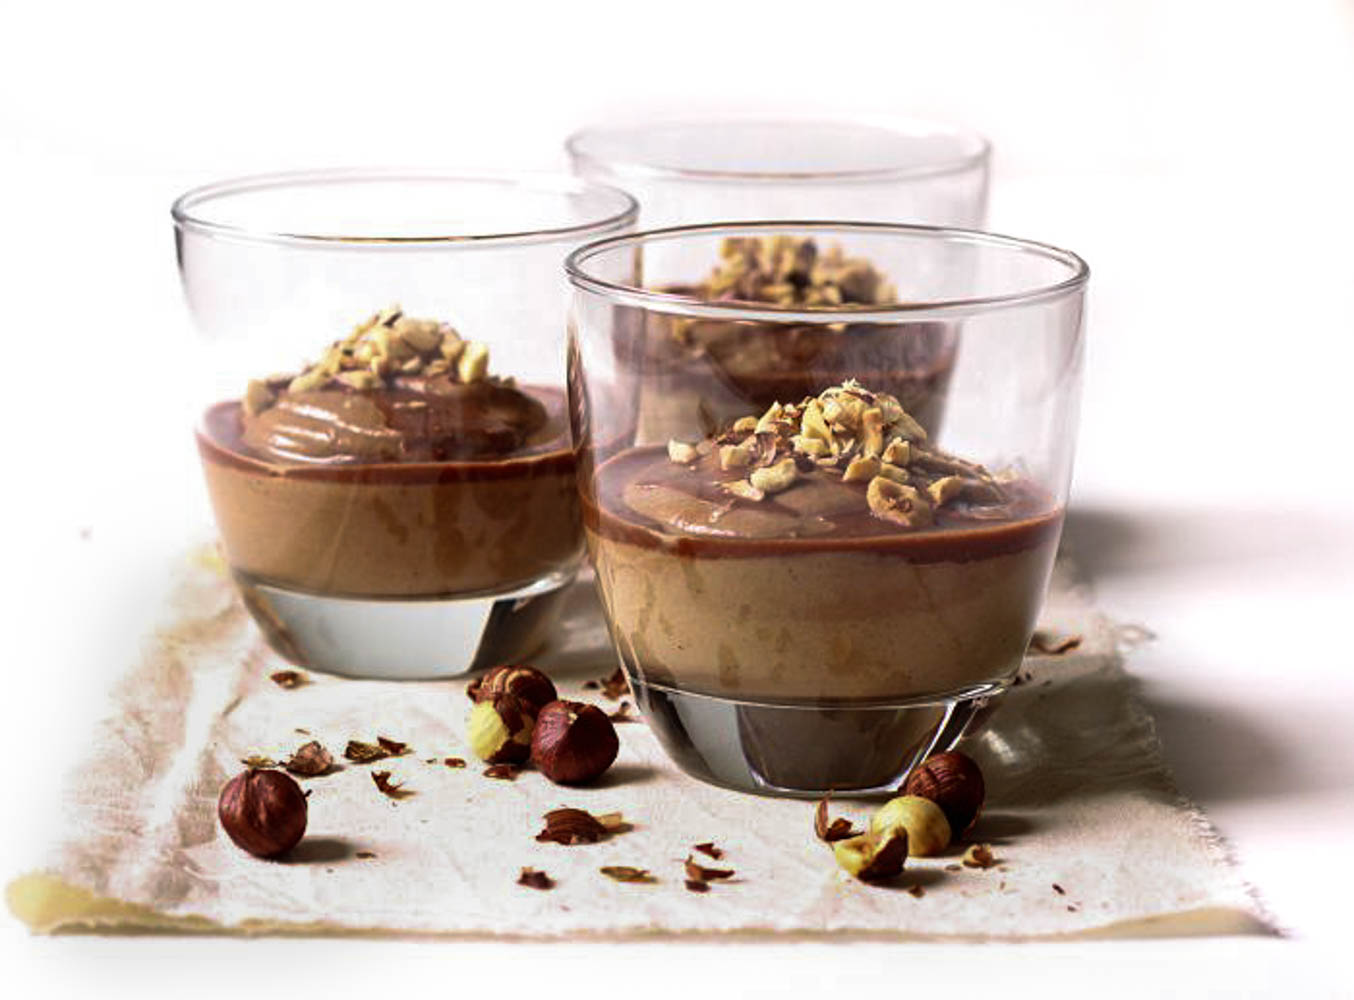 Roasted hazelnut and chocolate mousse (aka healthy N(o)tella cups)